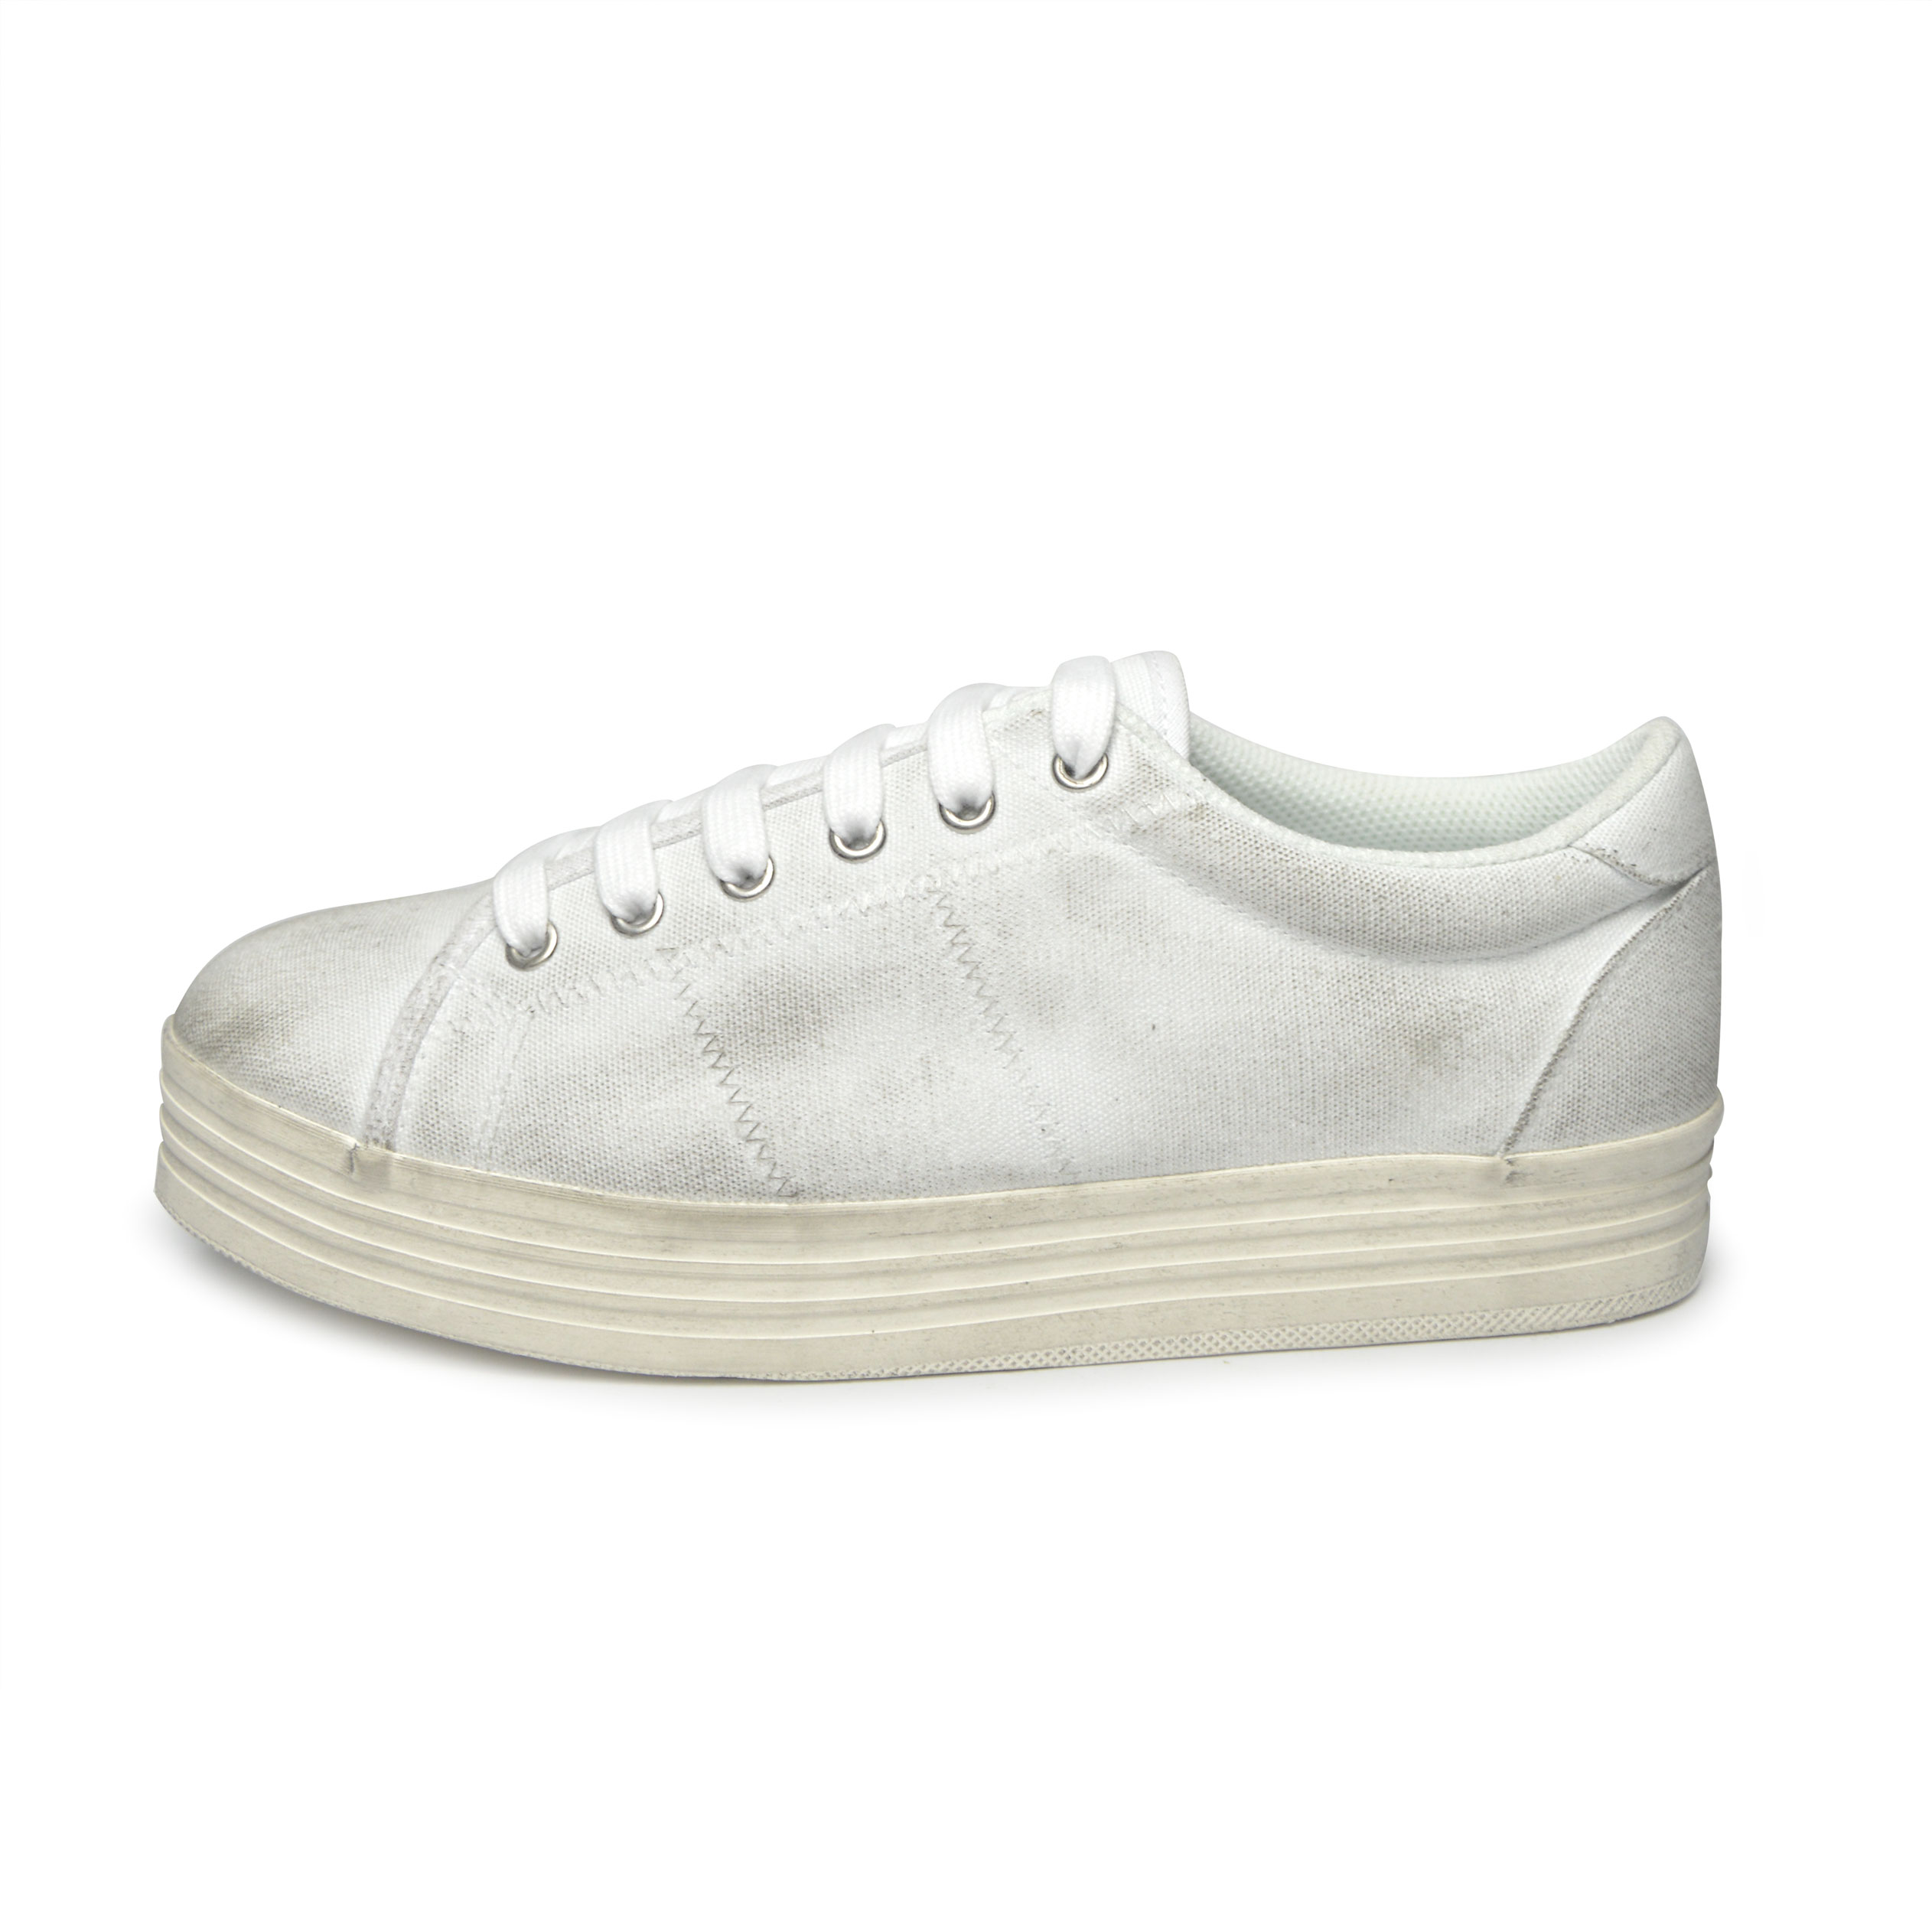 47a11962ea4 JEFFREY CAMPBELL SNEAKERS UOMO ZOMG CANVAS WASH - WHITE W